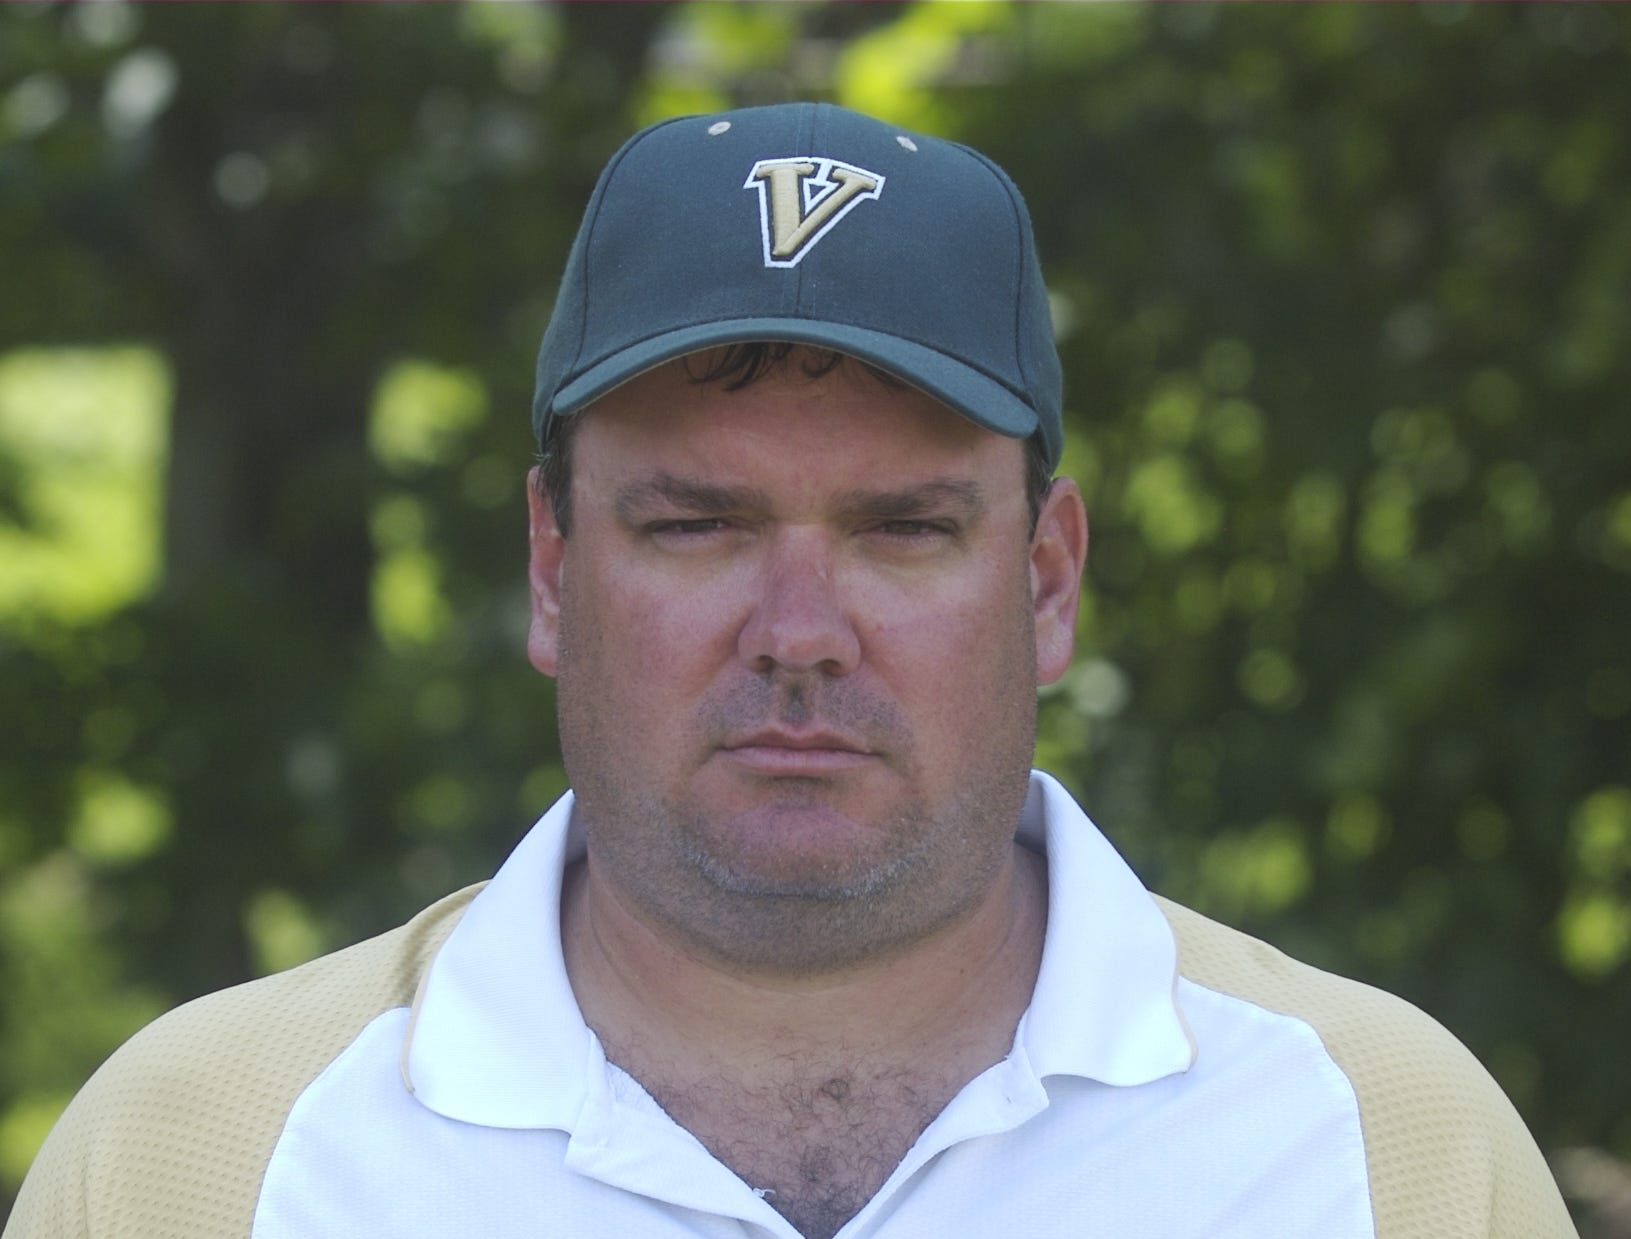 2009 Vestal football, Head Coach Tank Anderson